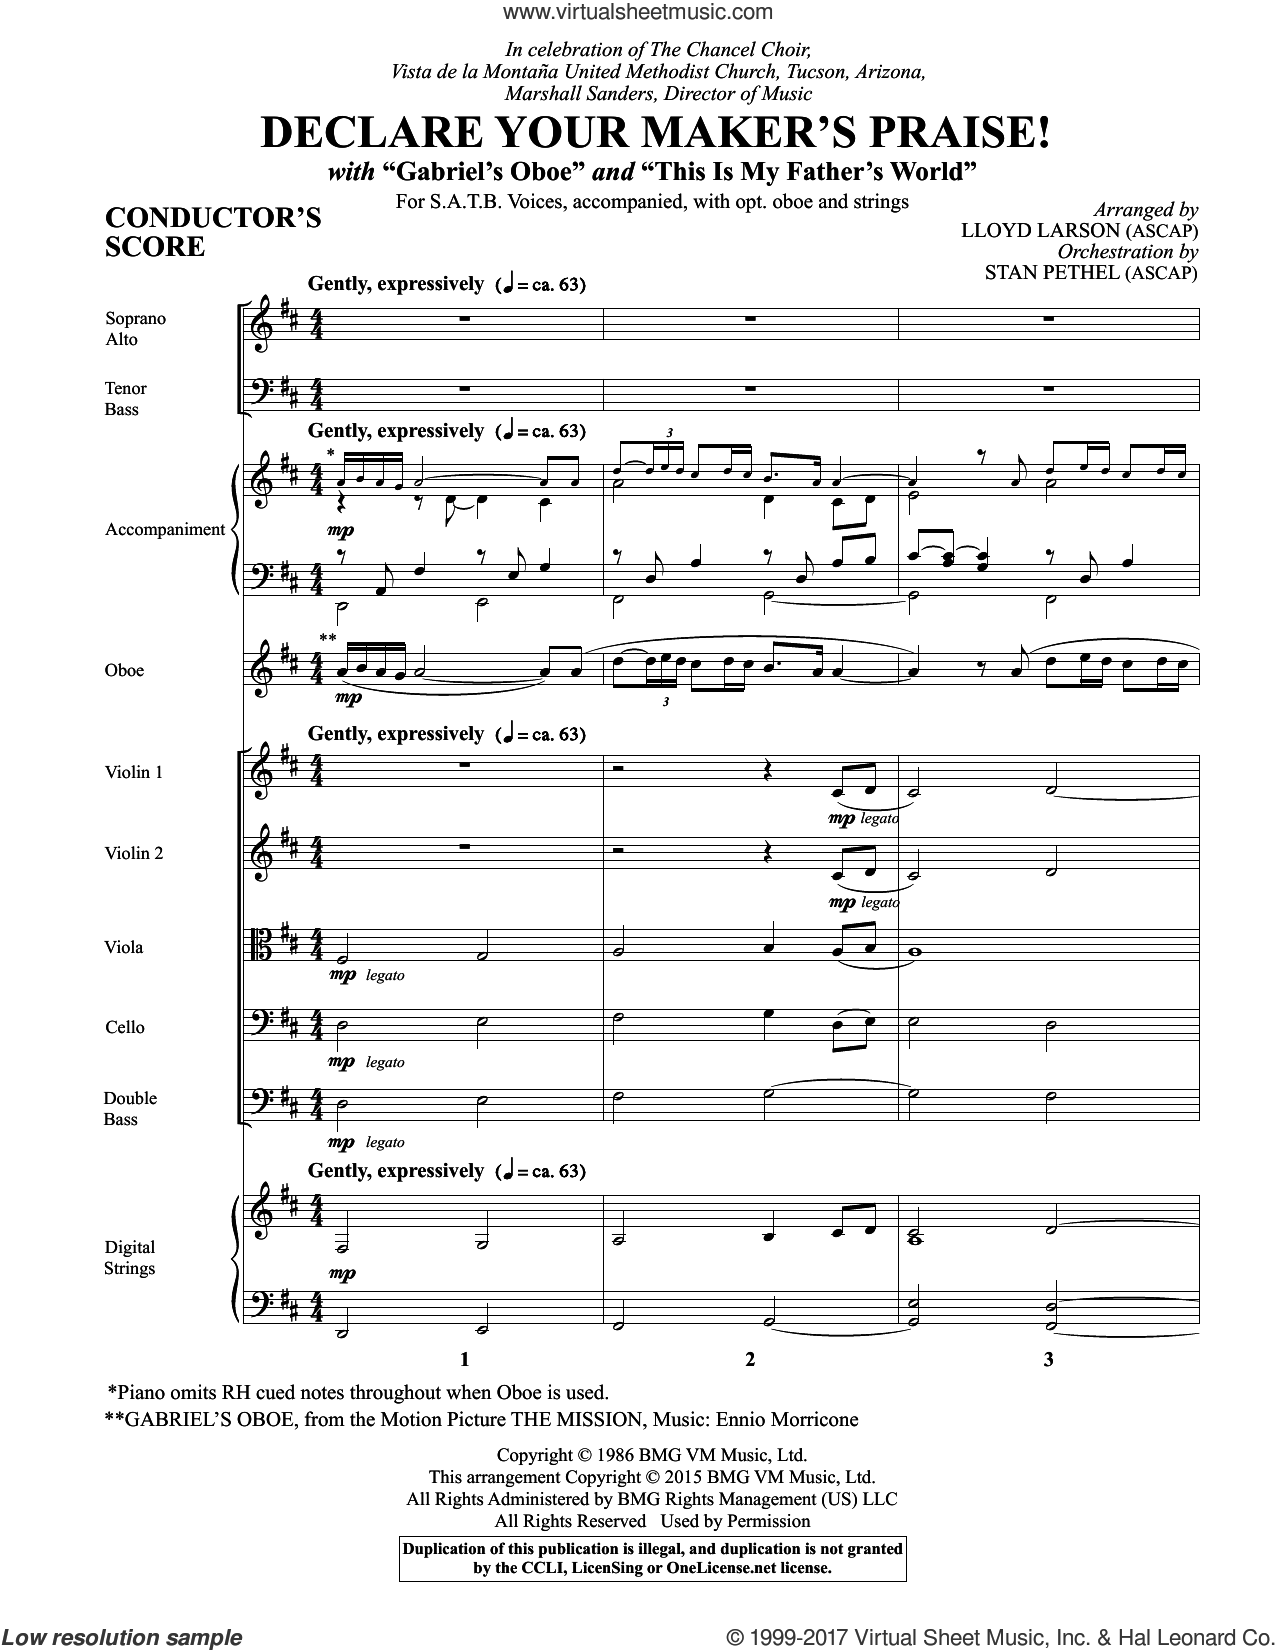 Declare Your Maker's Praise! (COMPLETE) sheet music for orchestra/band by Lloyd Larson and Ennio Morricone, intermediate